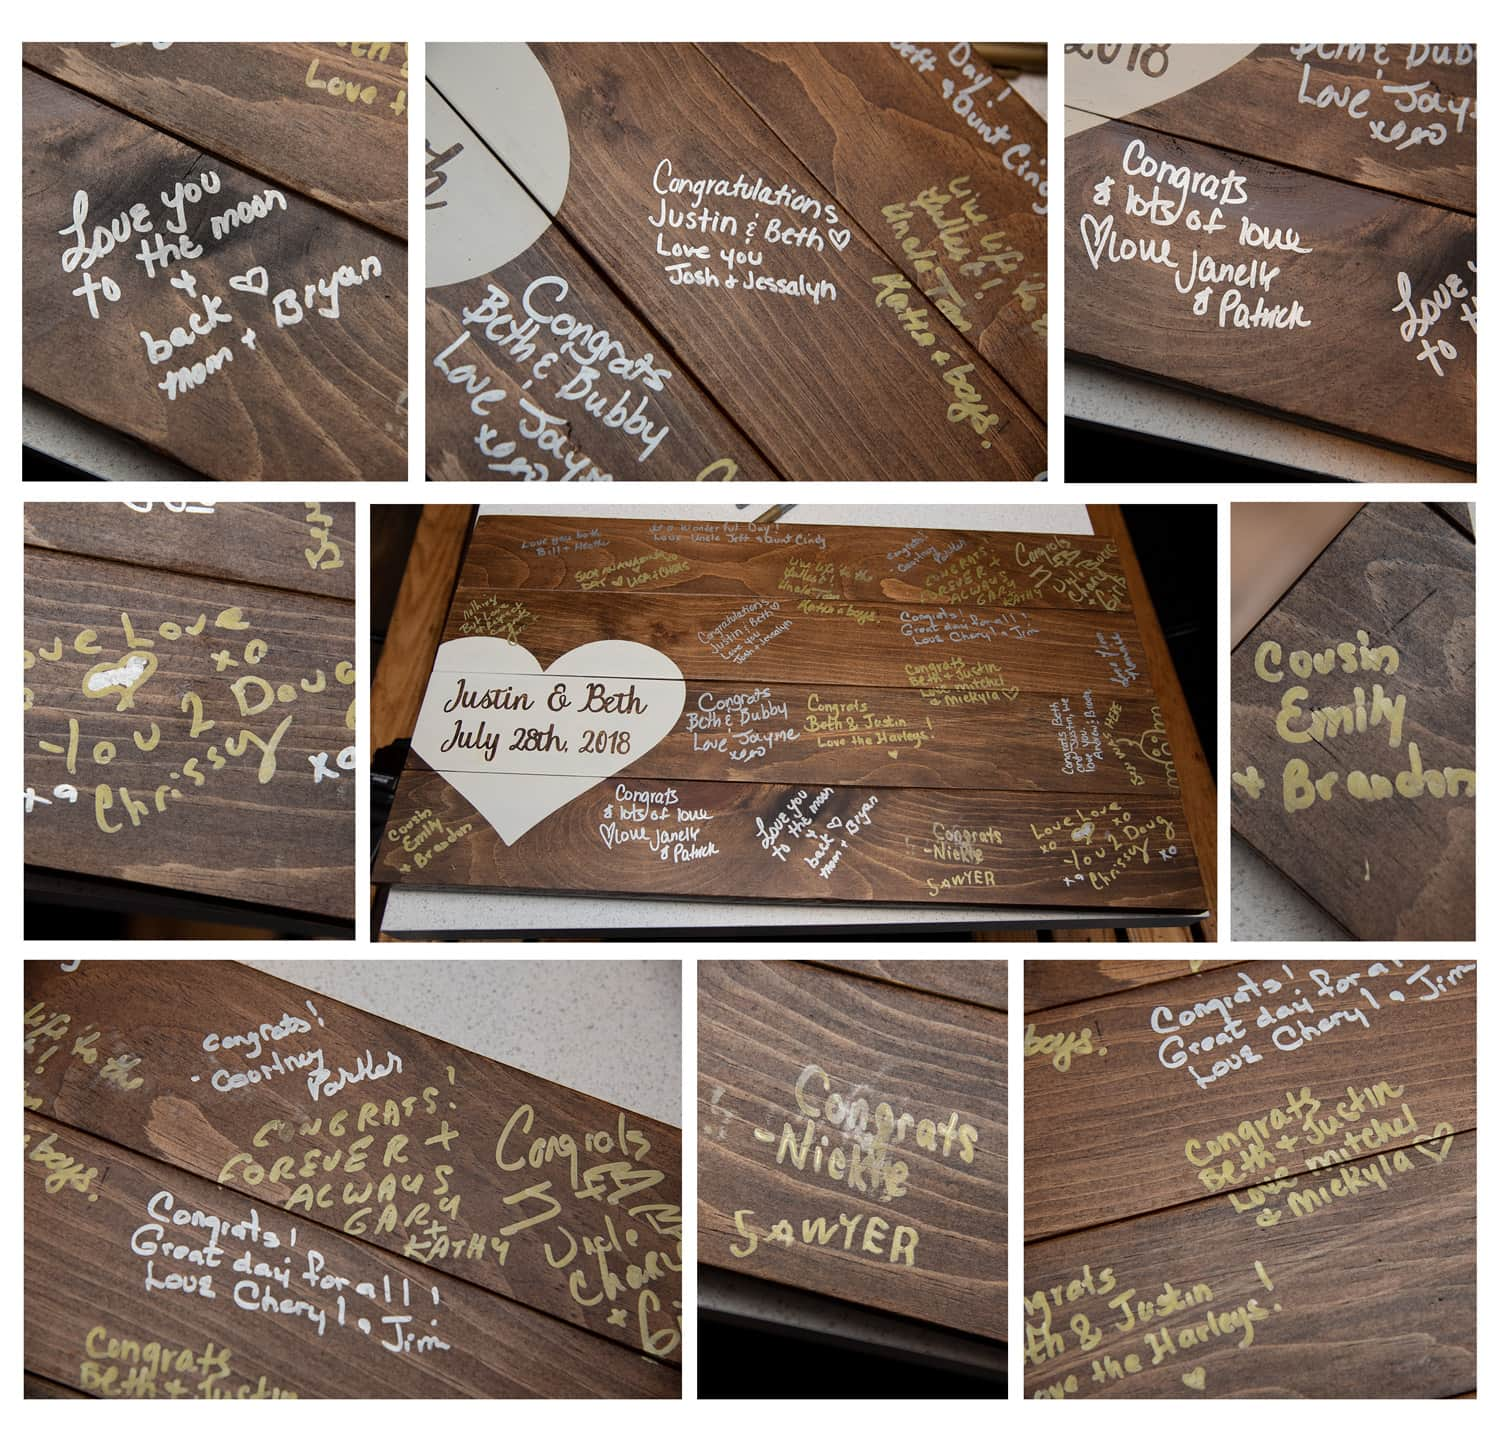 a wooden wedding guest book with a painted heart for wedding guests to sign on the Party Boat in Halifax